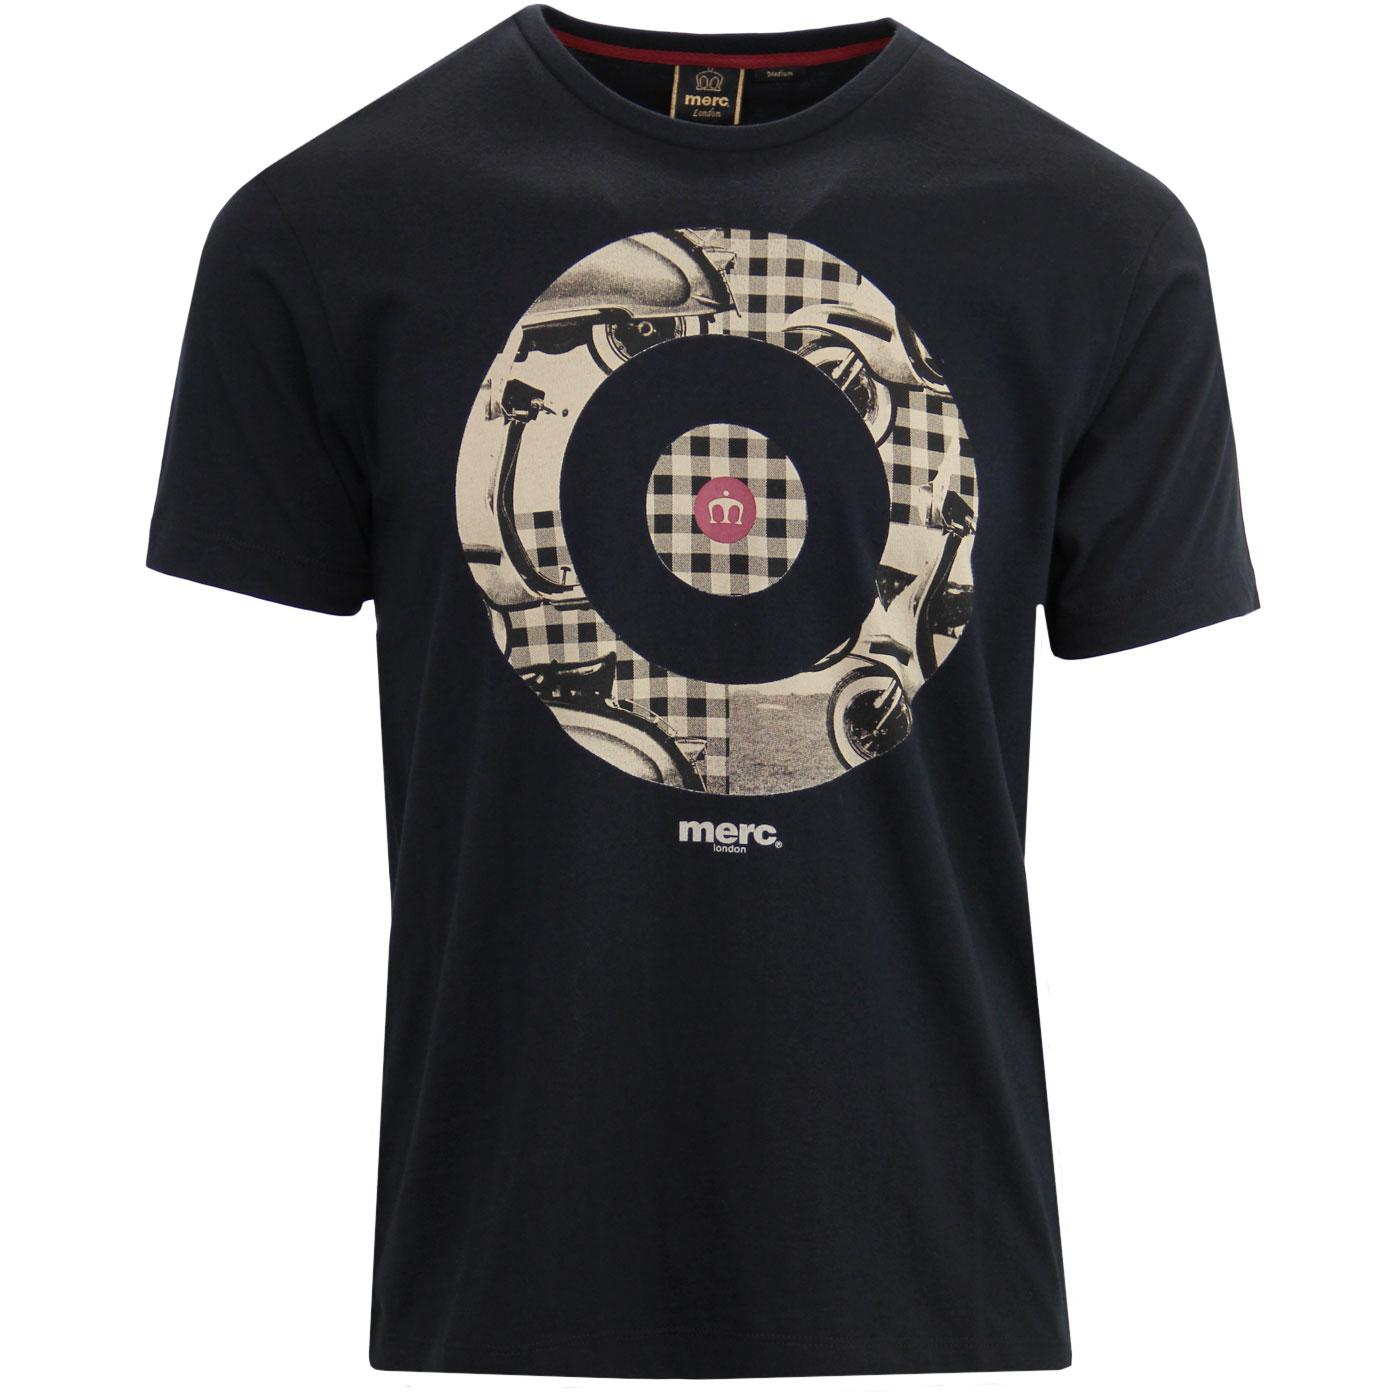 Windmill MERC Retro Scooter Check Mod Target Tee